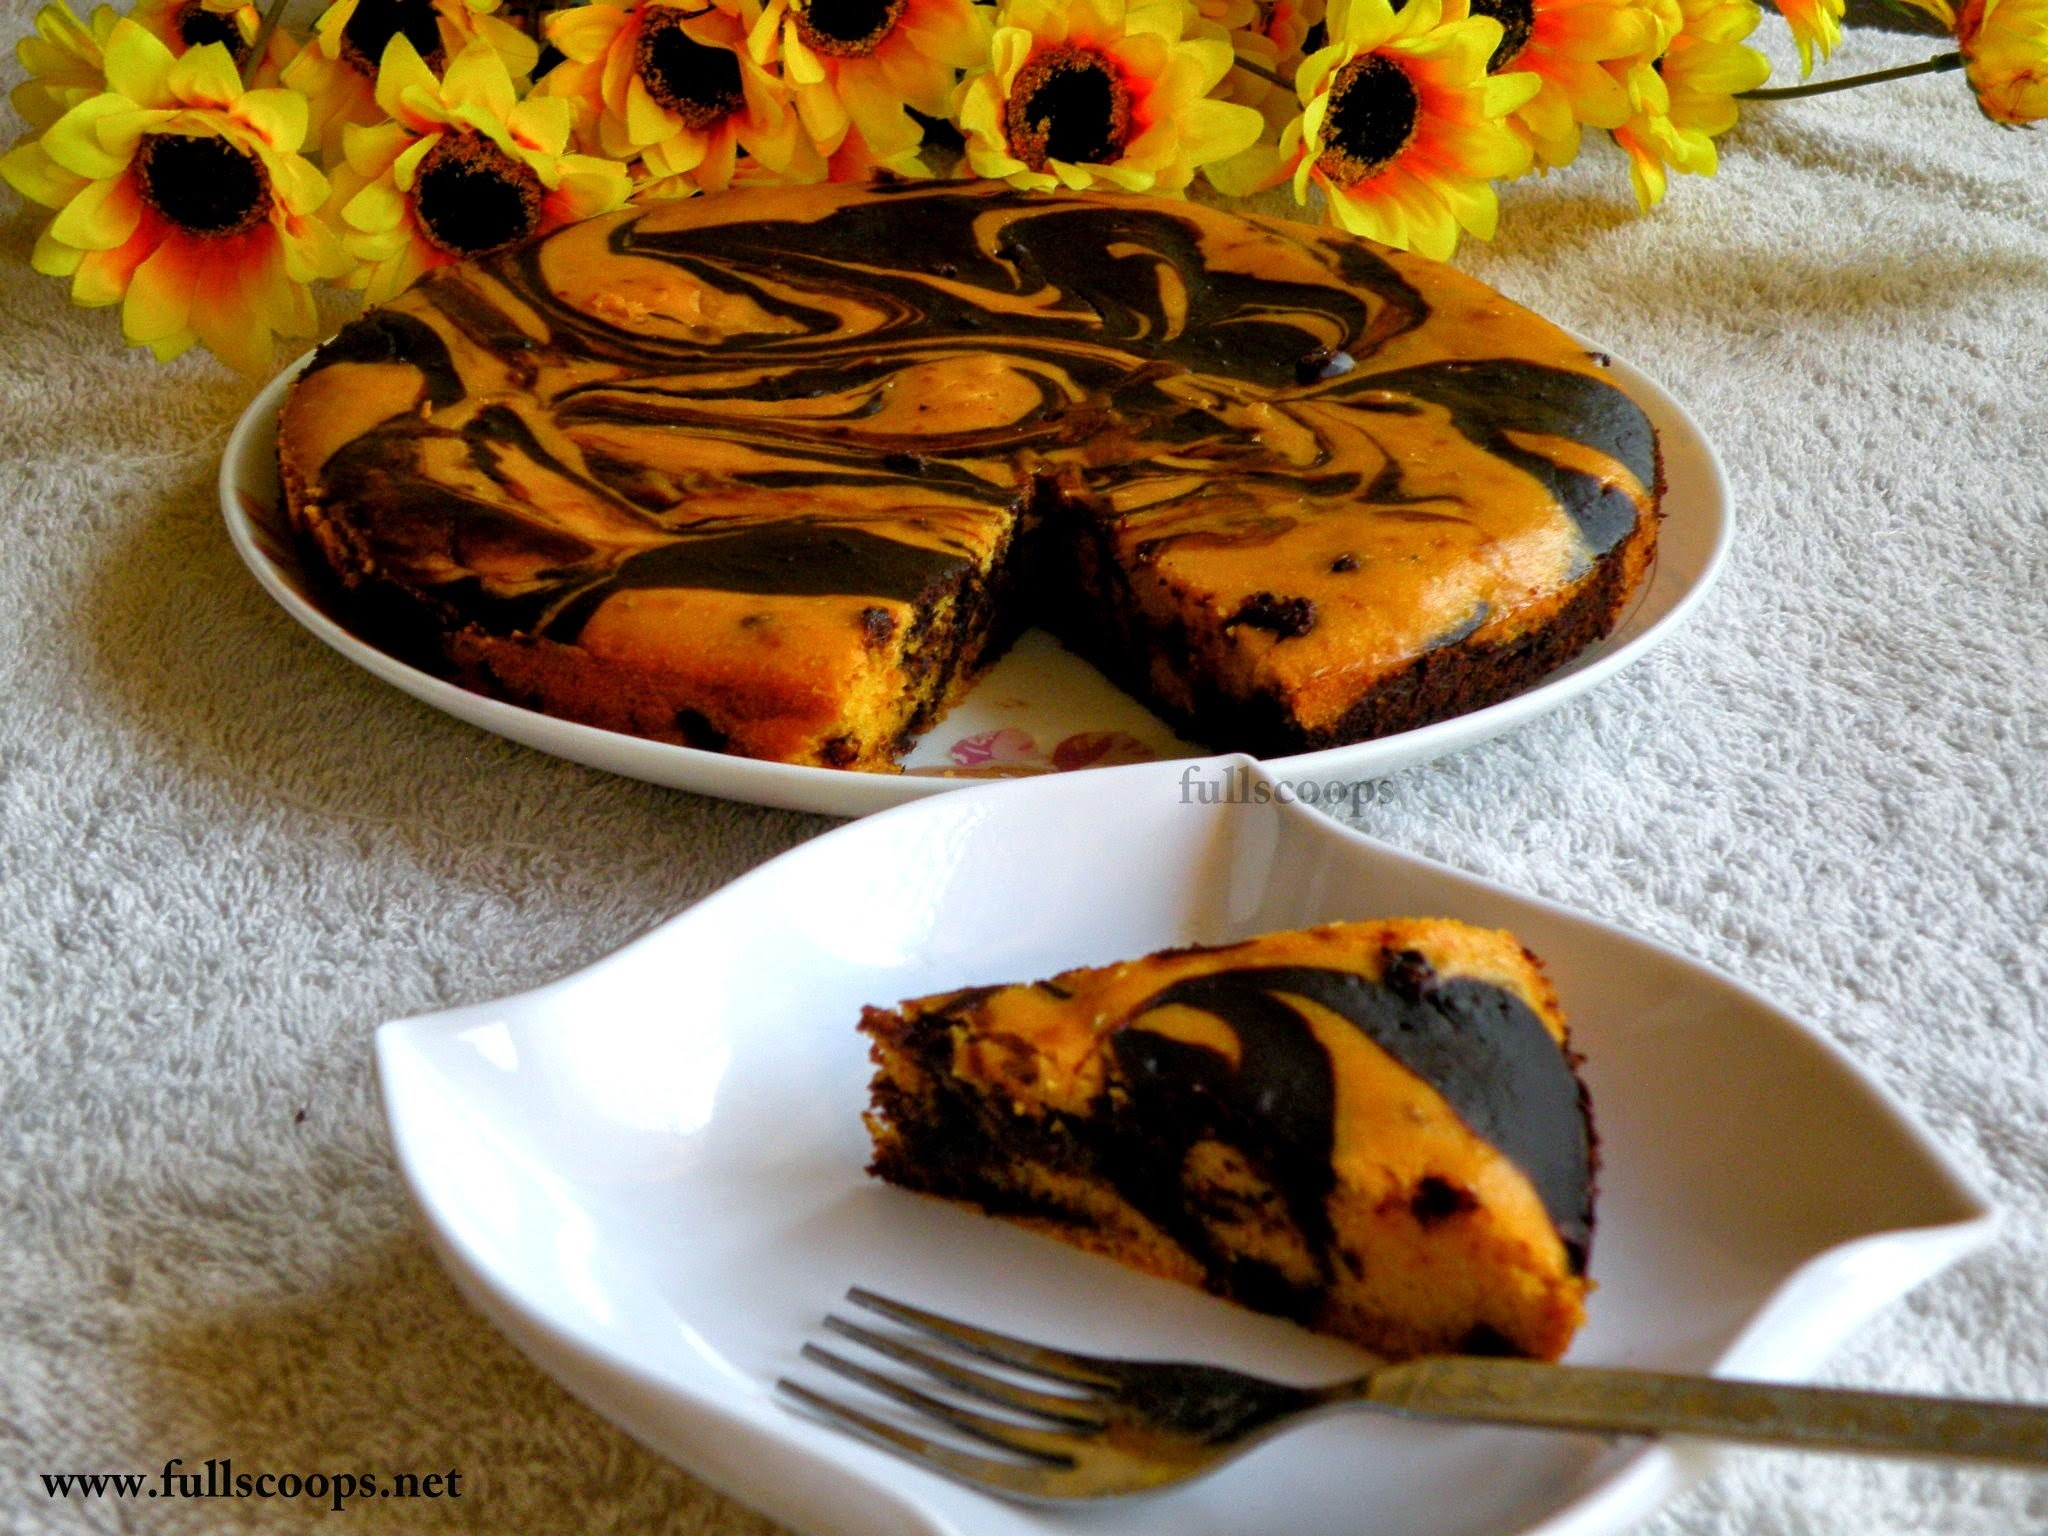 Eggless Mango and Chocolate Marble Cake (eggless and butterless)